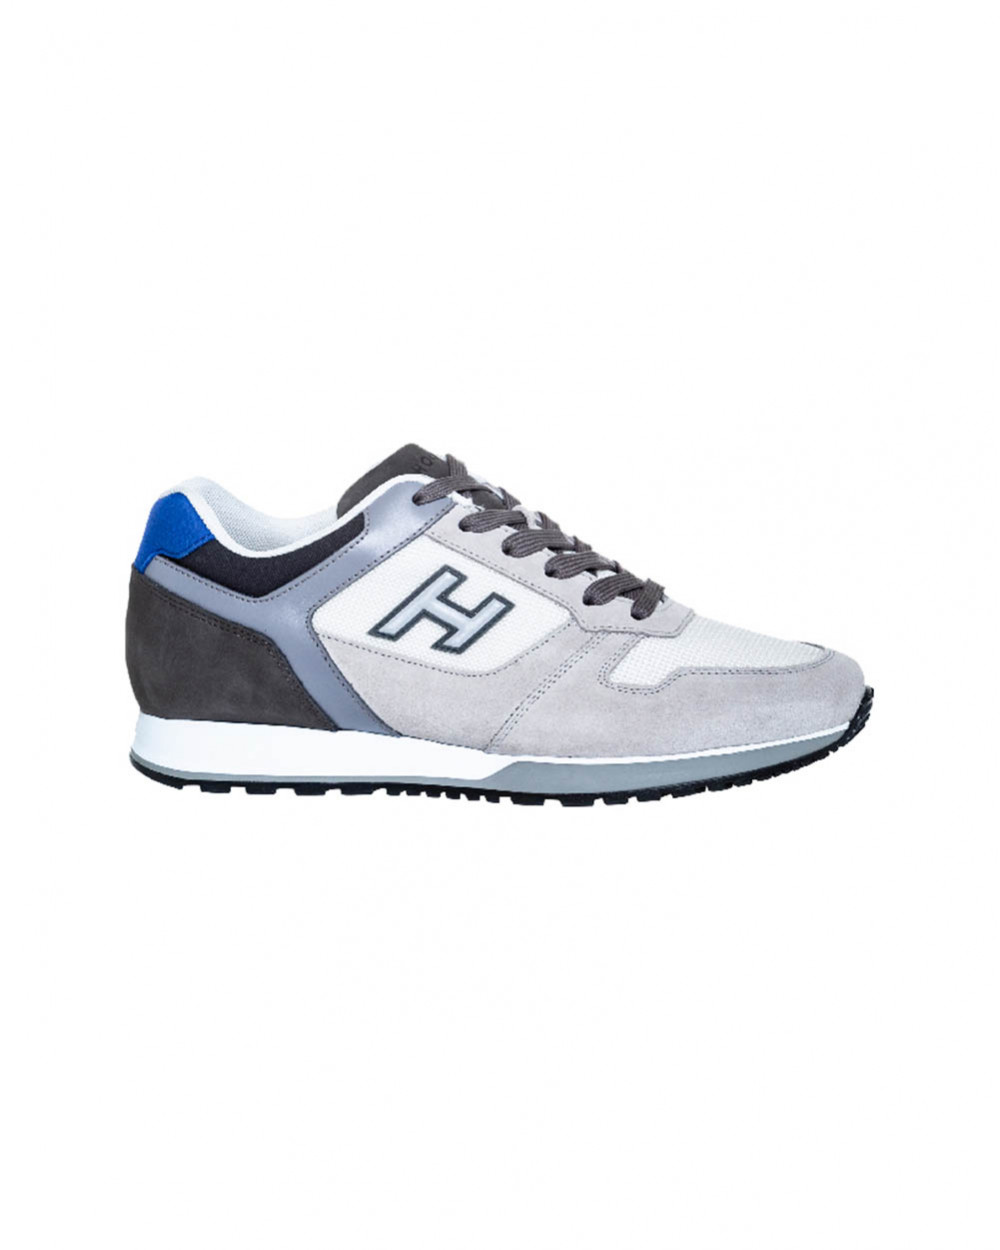 H321 - Calf and split leather sneakers with blue buttress